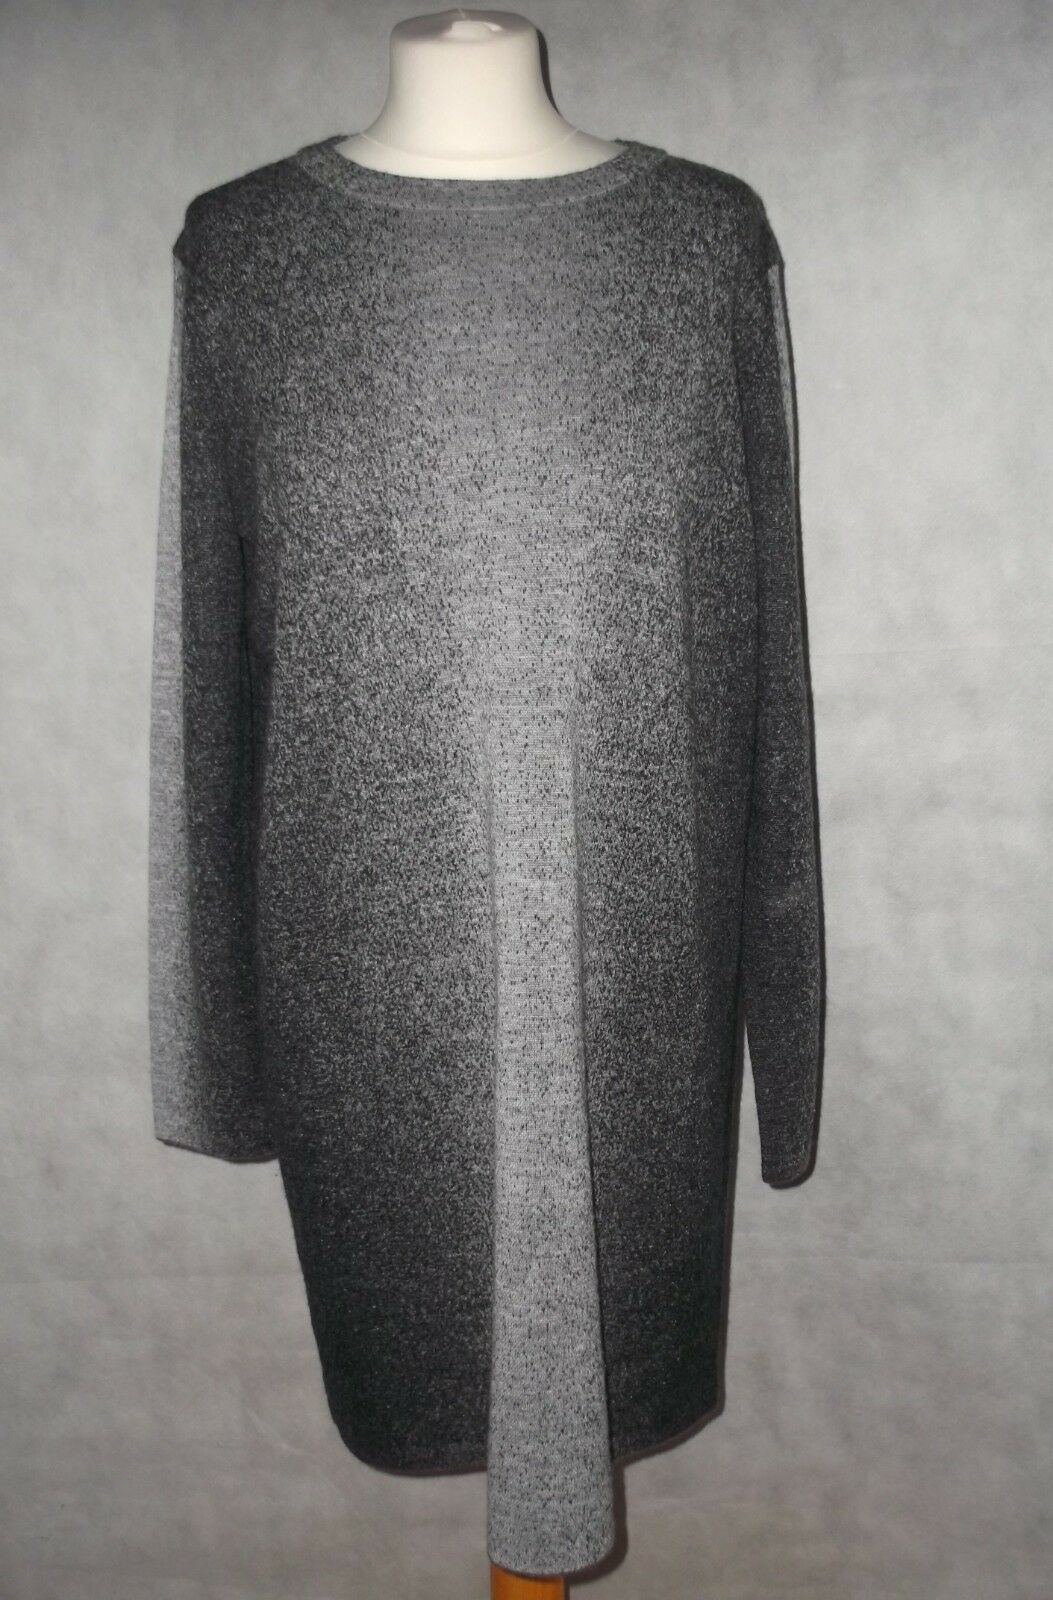 b99829c2bfbe Immaculate fine pure wool jumper dress or long knit tunic Größe L COS grau